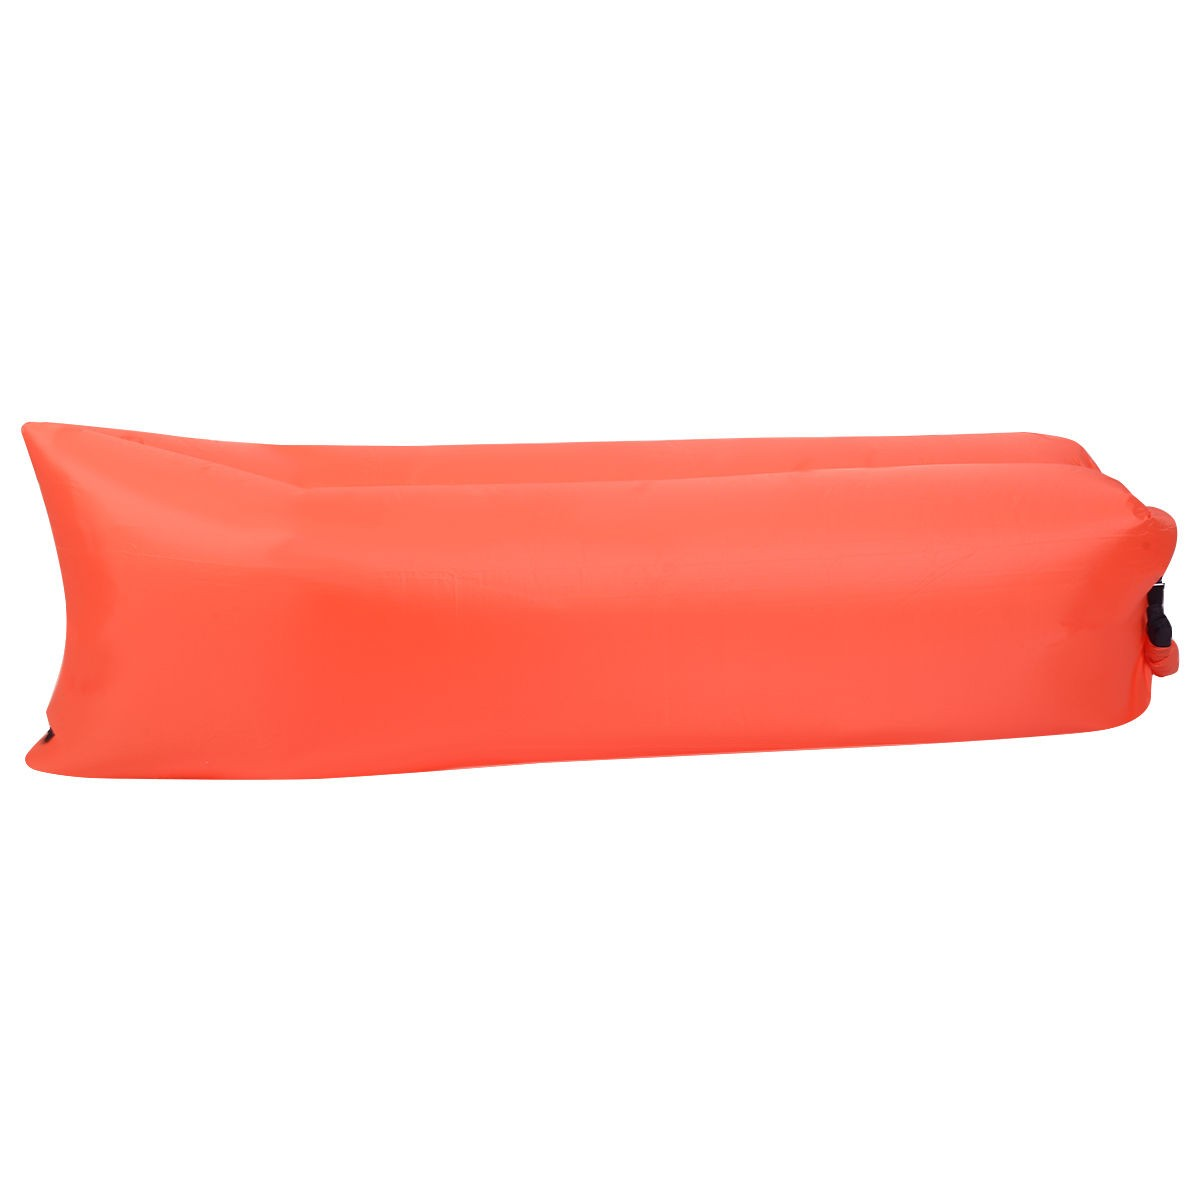 Outdoor Lazy Inflatable Couch Air Sleeping Sofa Lounger  : op3022ora from www.ebay.com size 1200 x 1200 jpeg 44kB